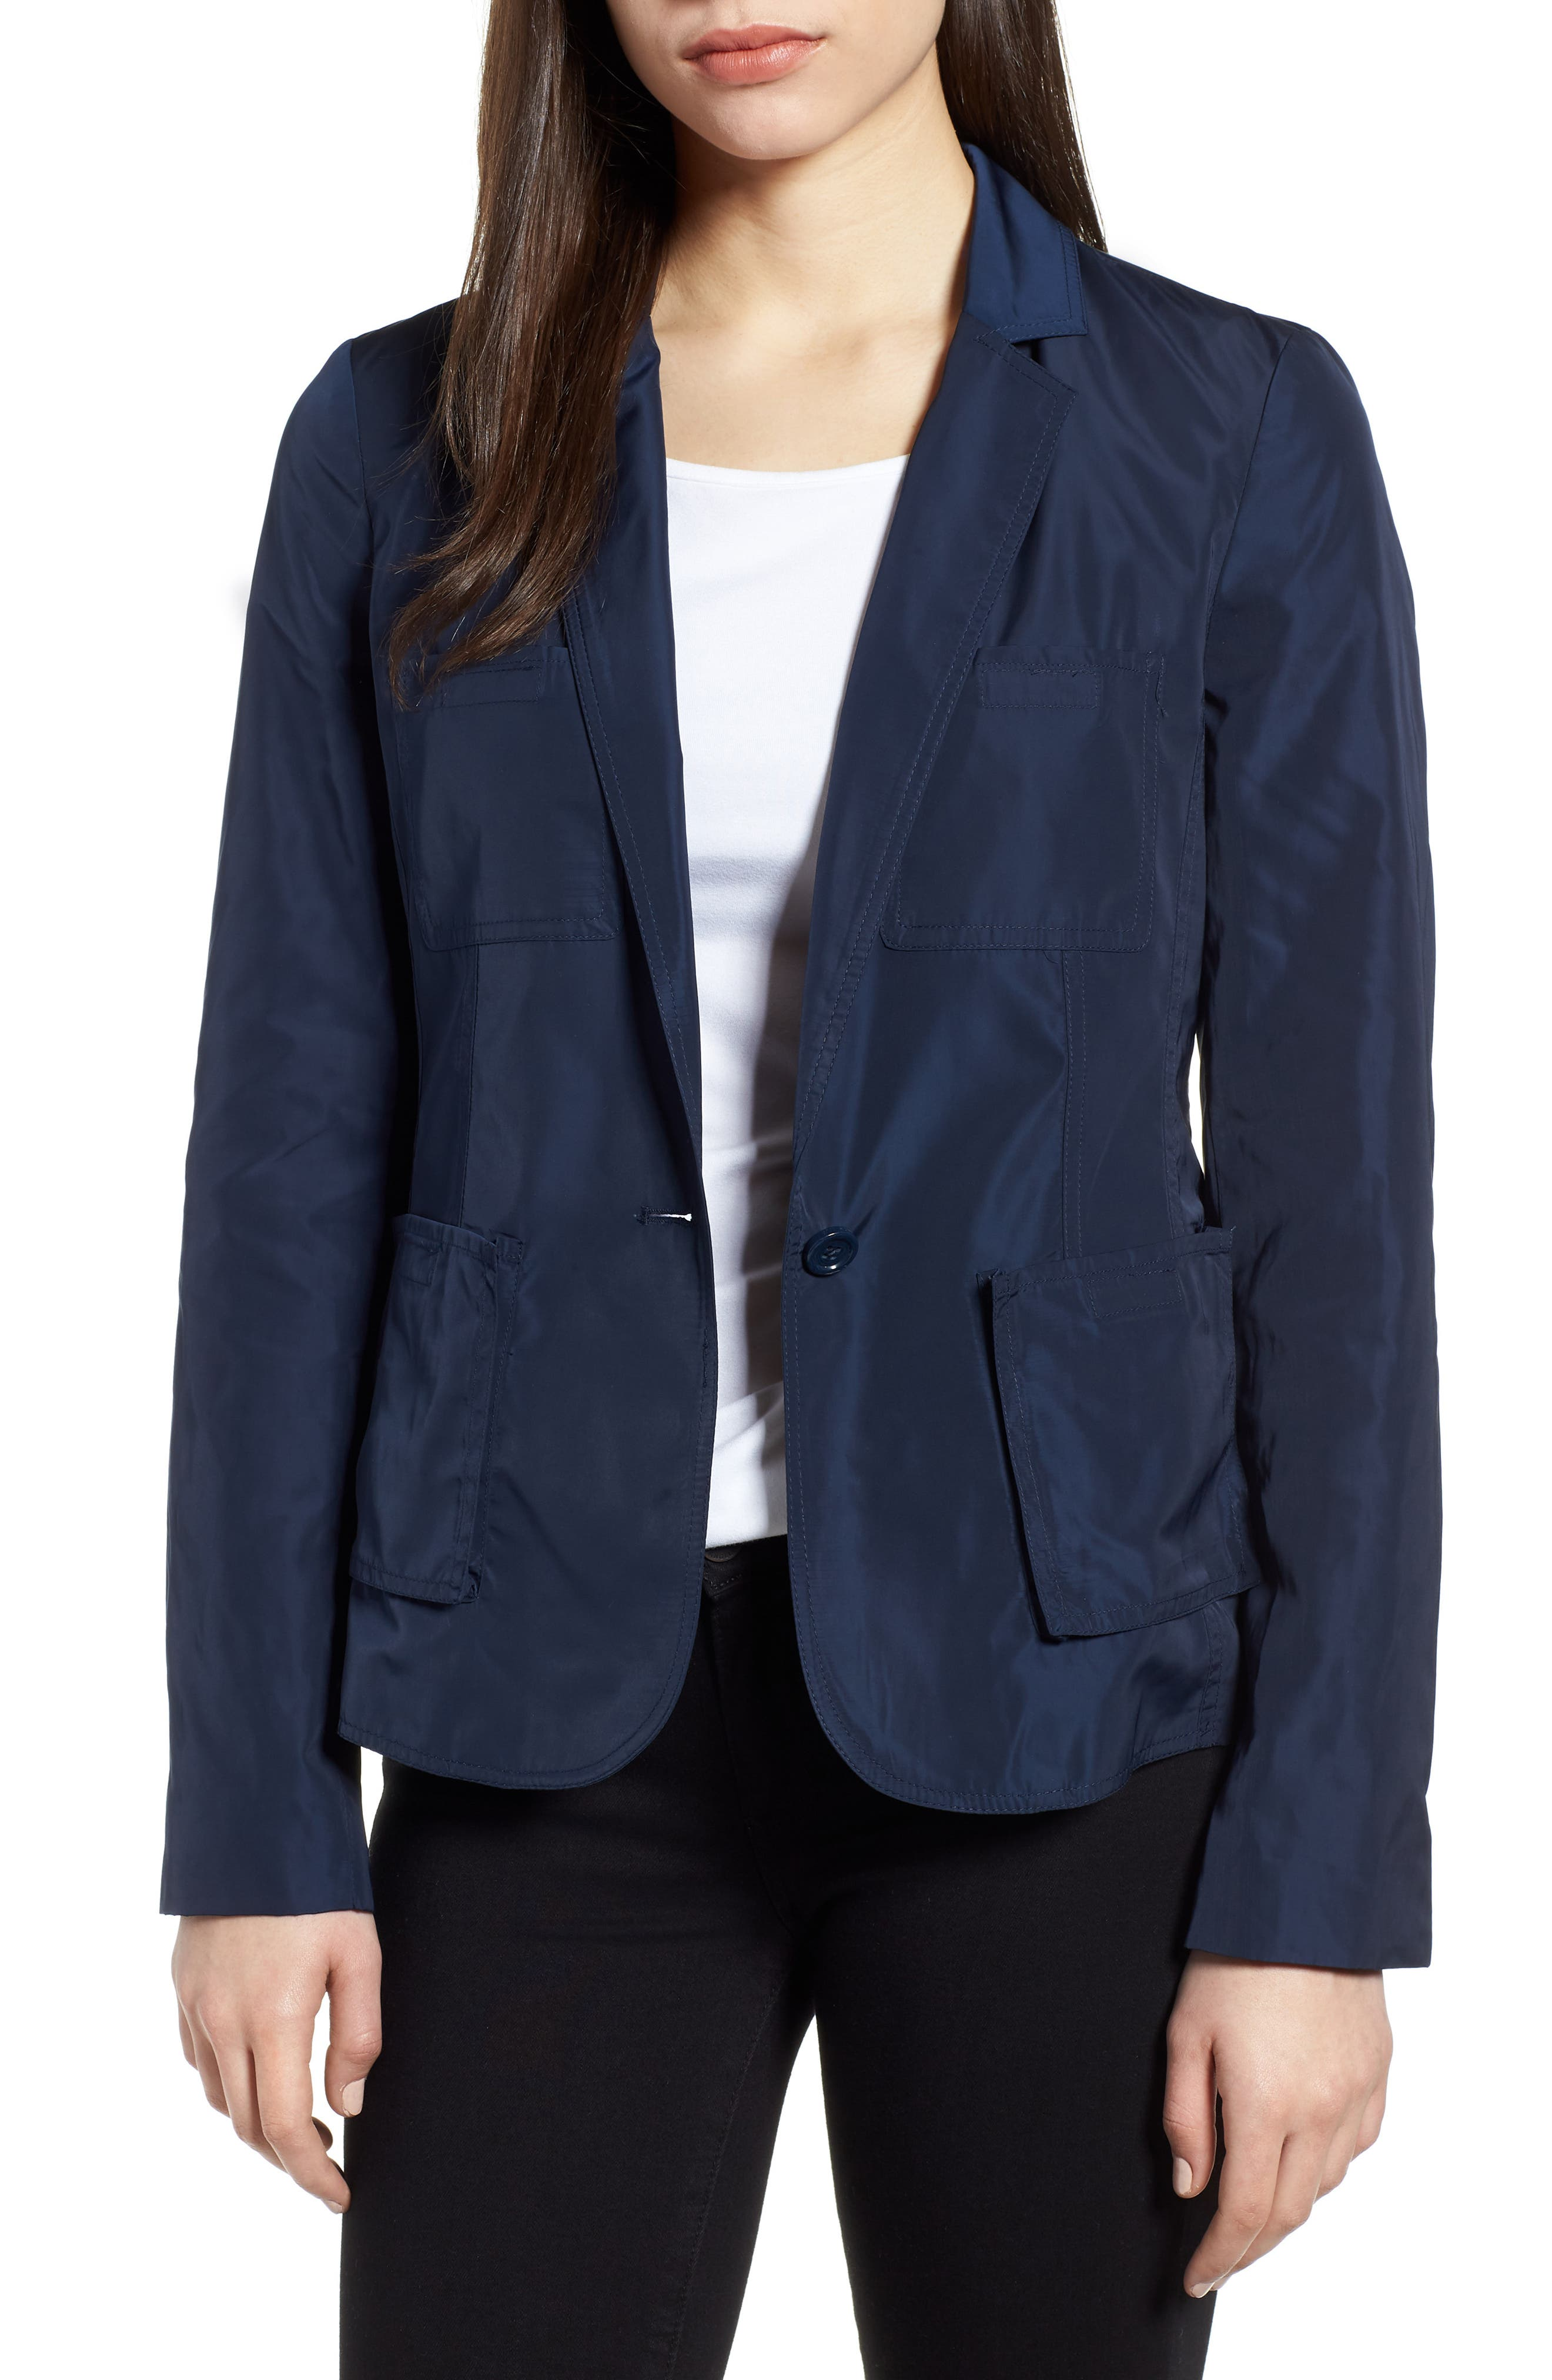 KENNETH COLE NEW YORK,                             Two-Button Blazer,                             Main thumbnail 1, color,                             404